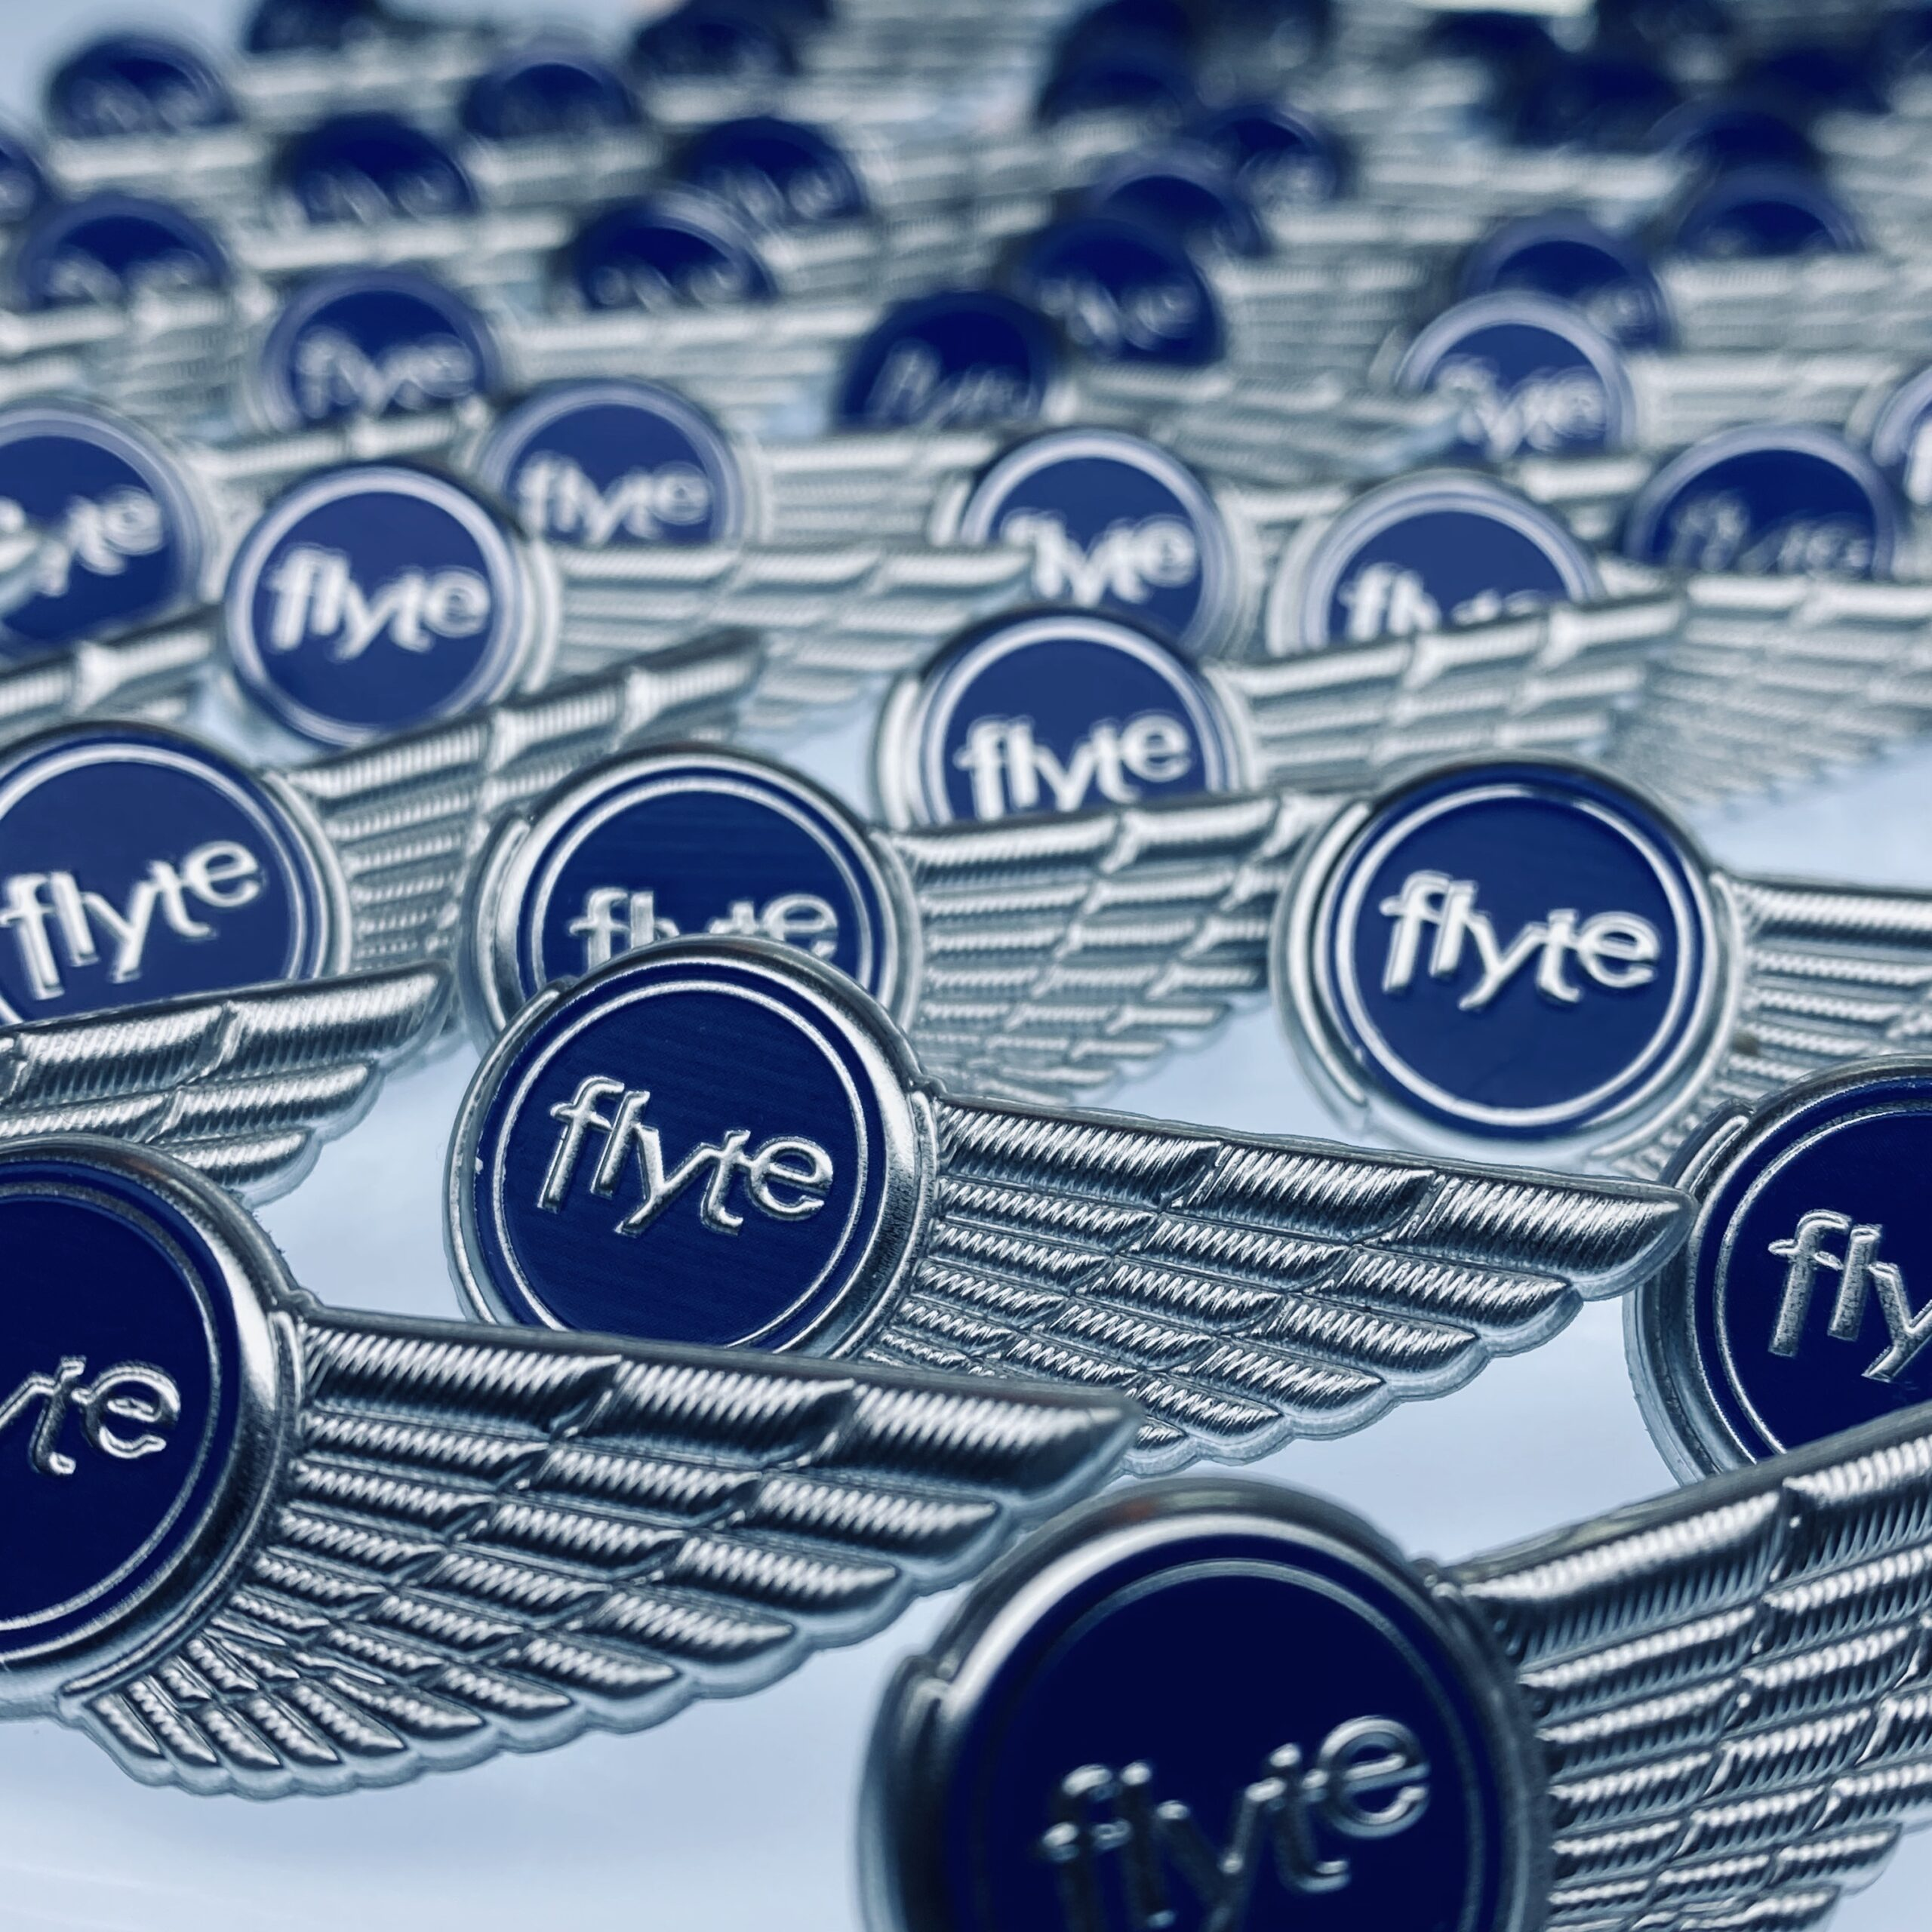 Flyte pins for event staff